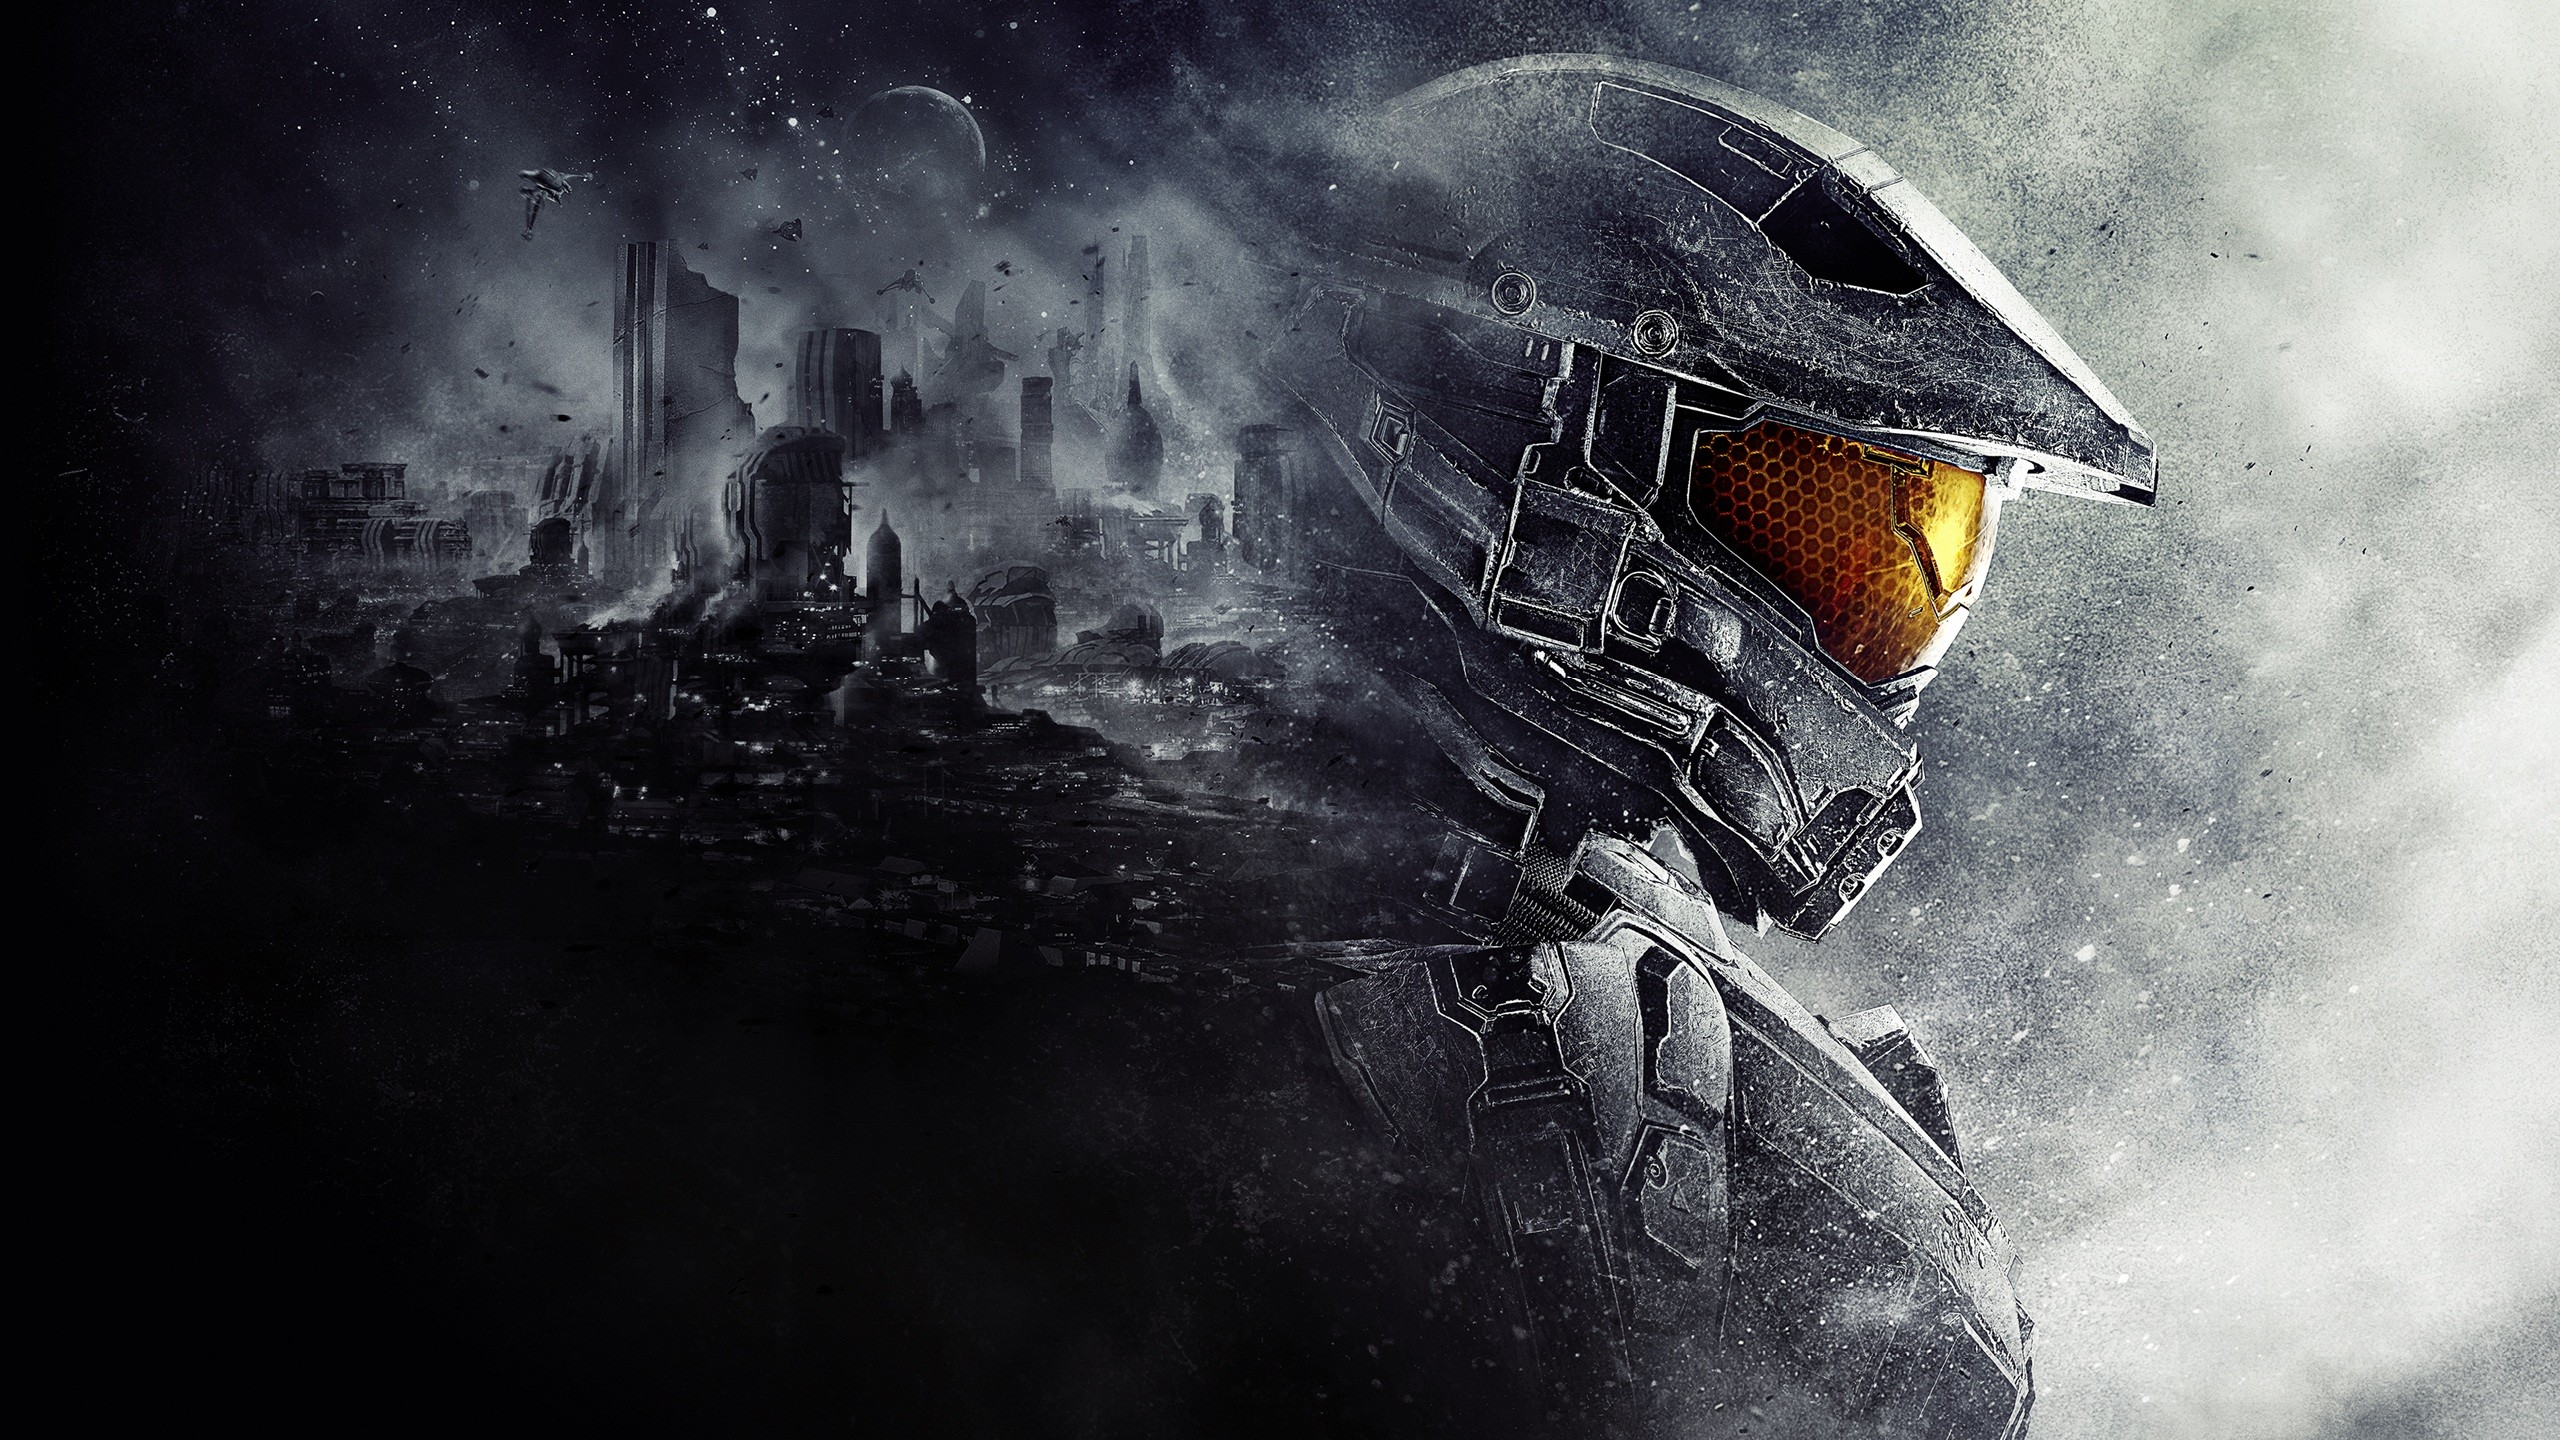 Halo 4 wallpaper 1080p 75 images 1920x1080 halo wallpapers halo background page 3 voltagebd Choice Image